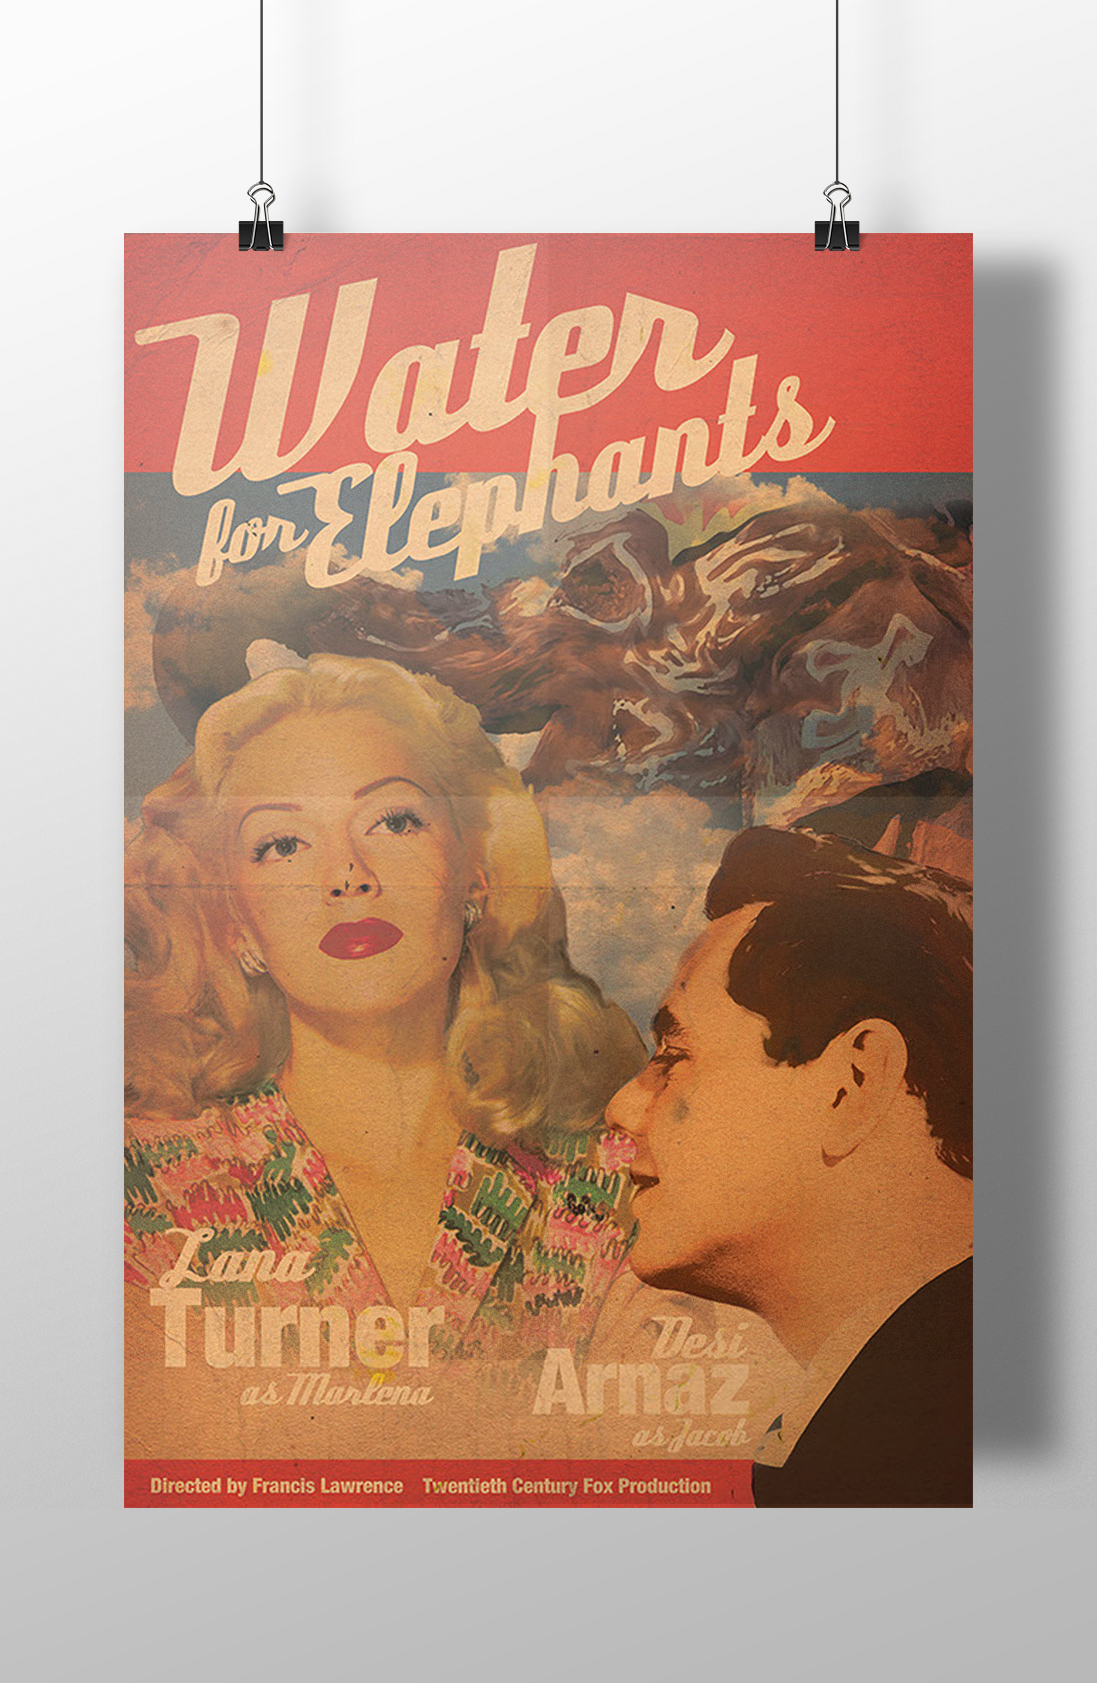 Water for Elephants Vintage Poster Design